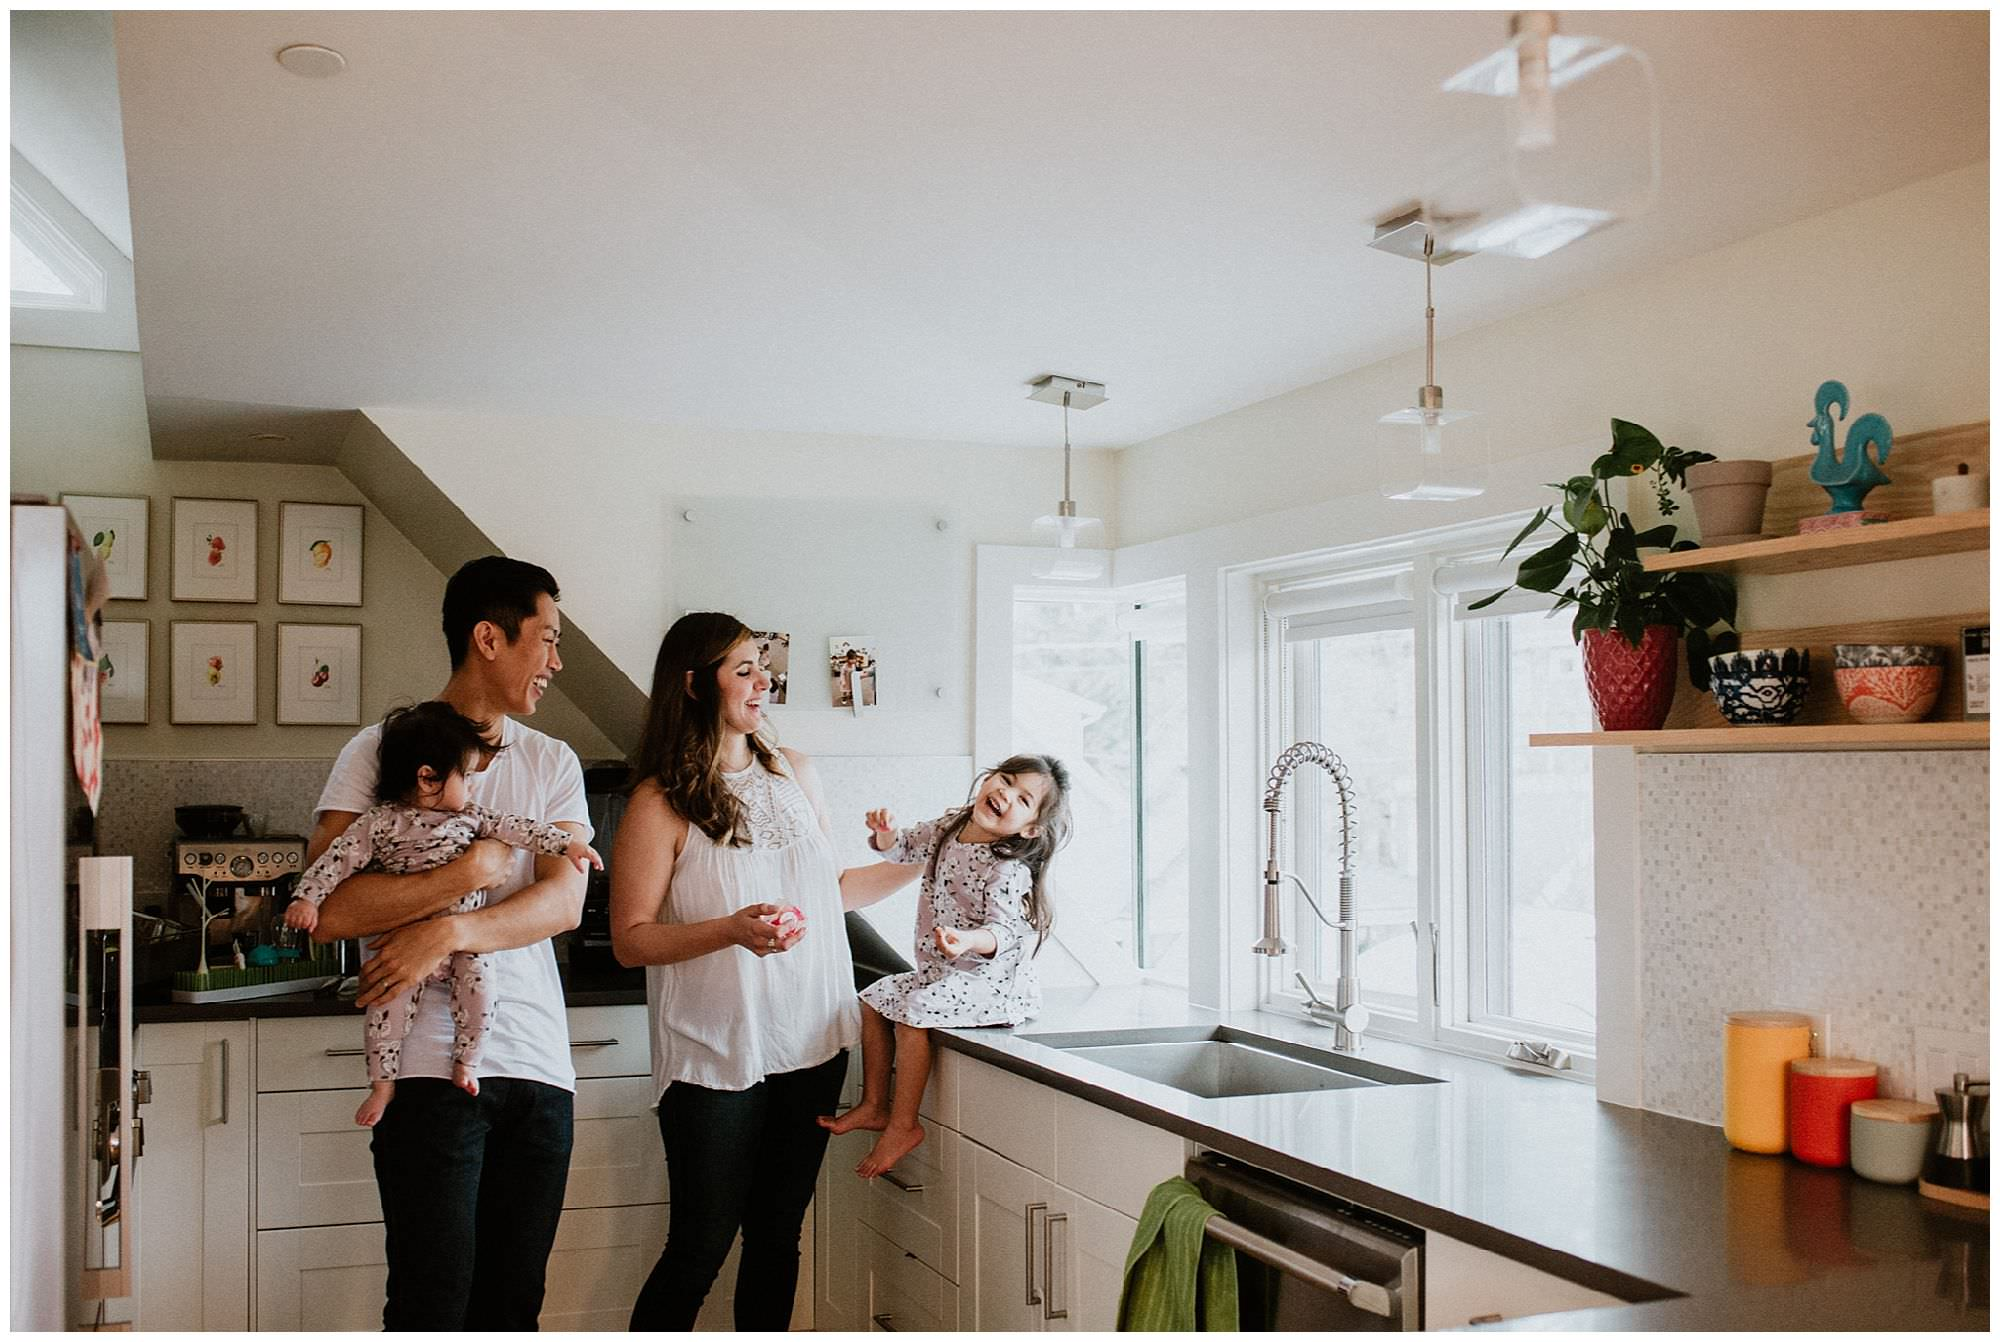 family-laughing-in-kitchen-Vancouver-lifestyle-session